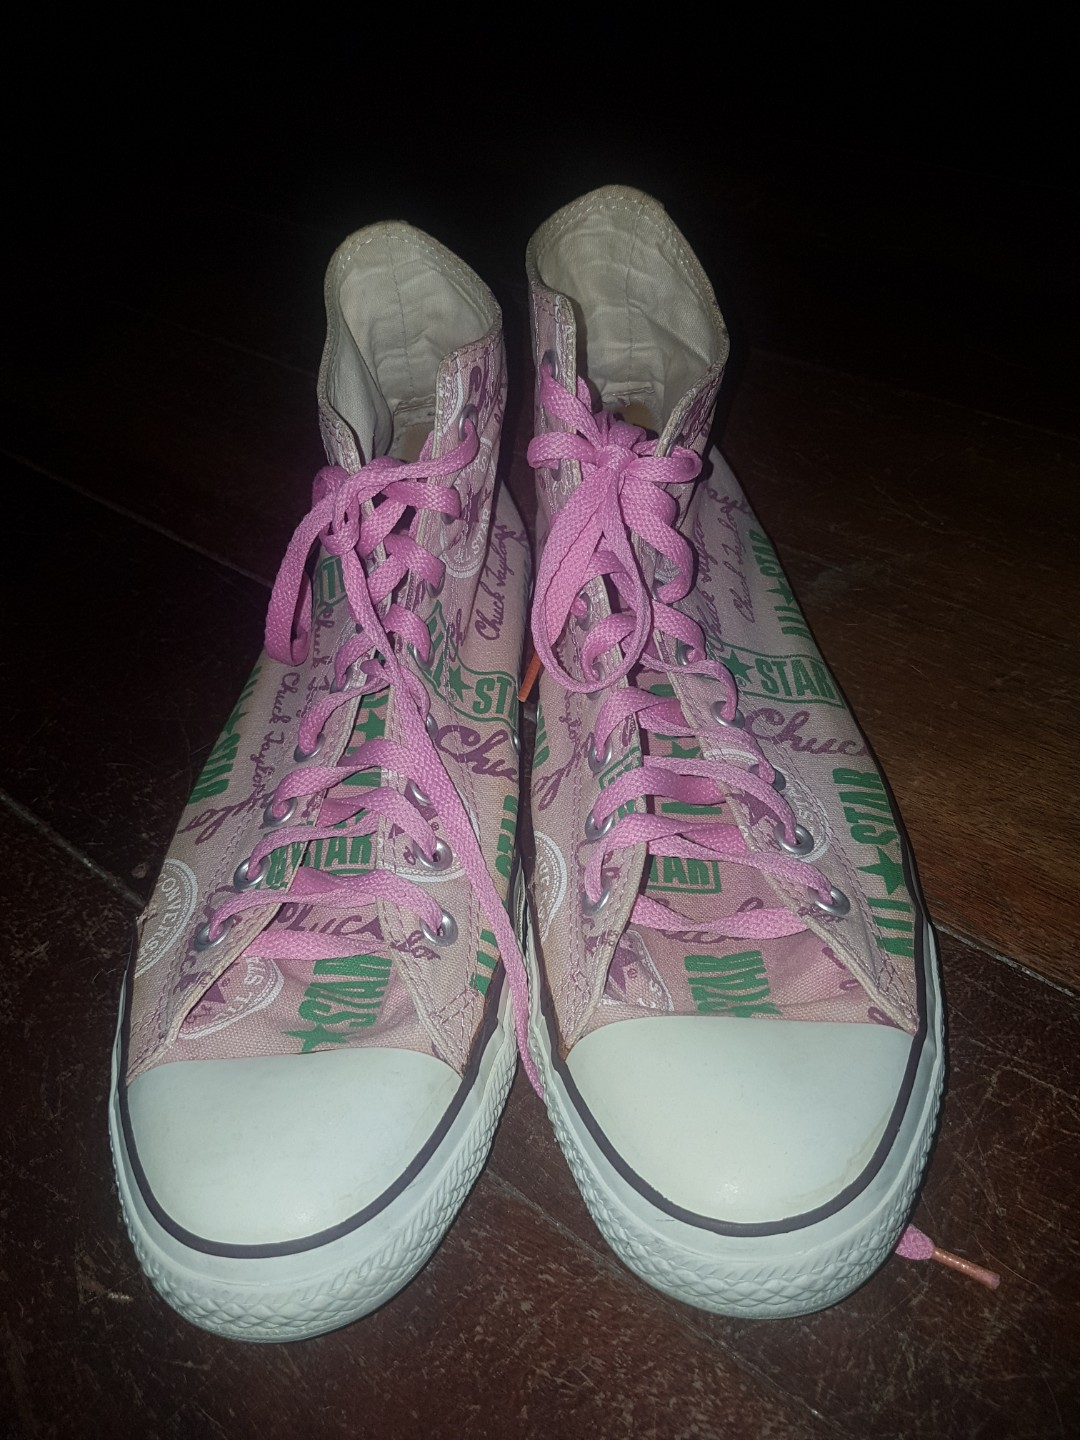 853b0281d1623d Converse Chuck Taylor All Star Pink with text design